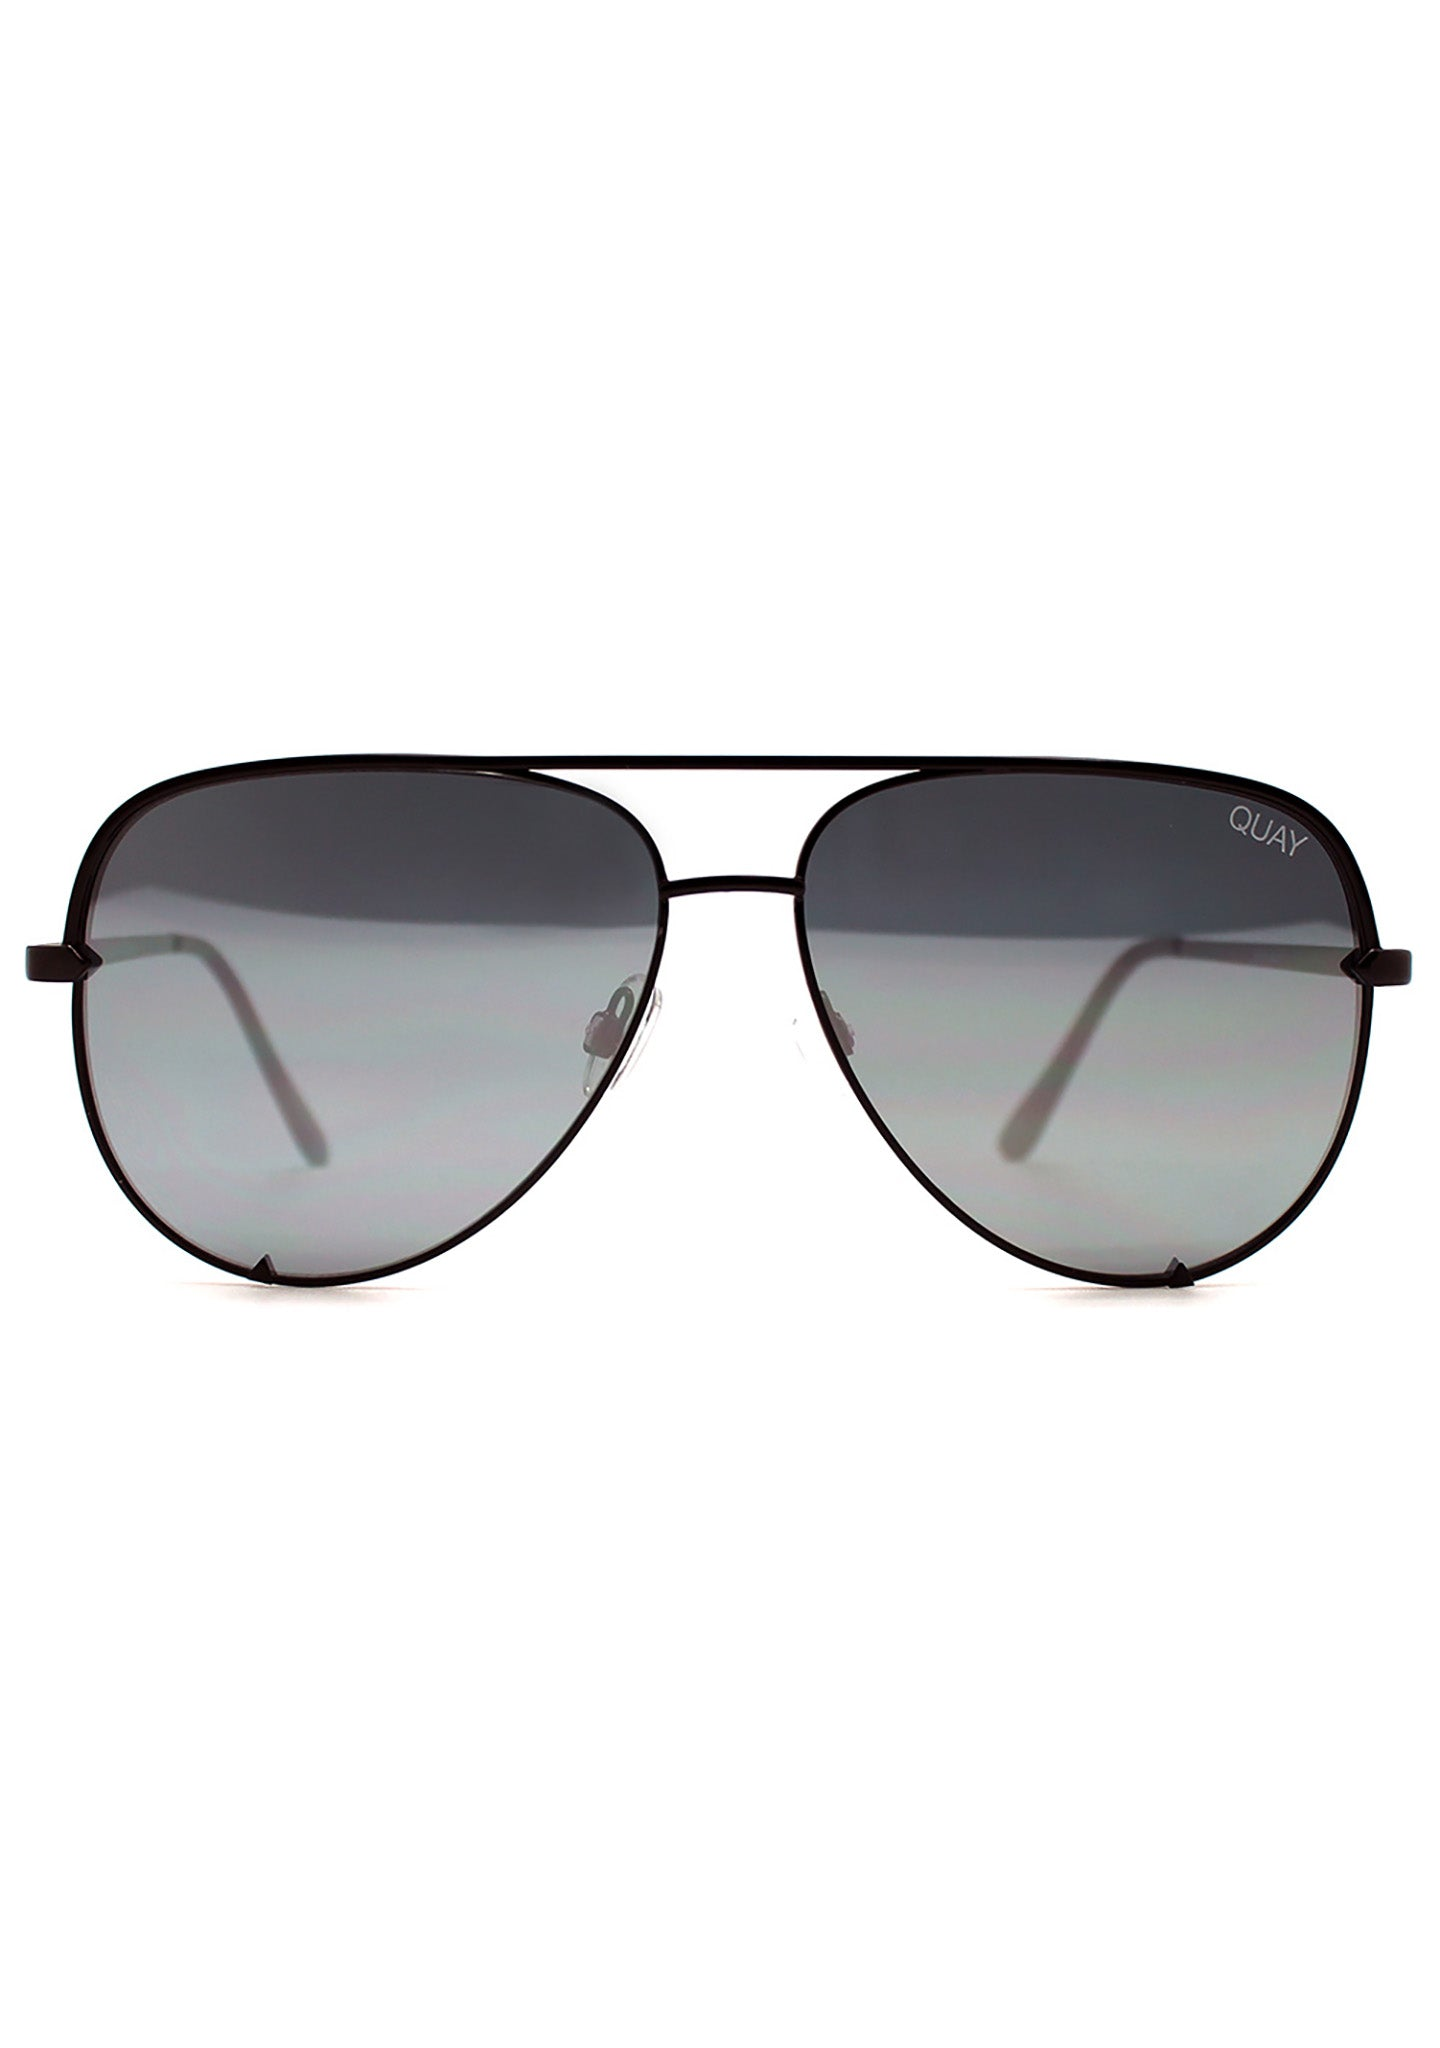 Quay Australia X Desi Perkins High Key Sunglasses in Black